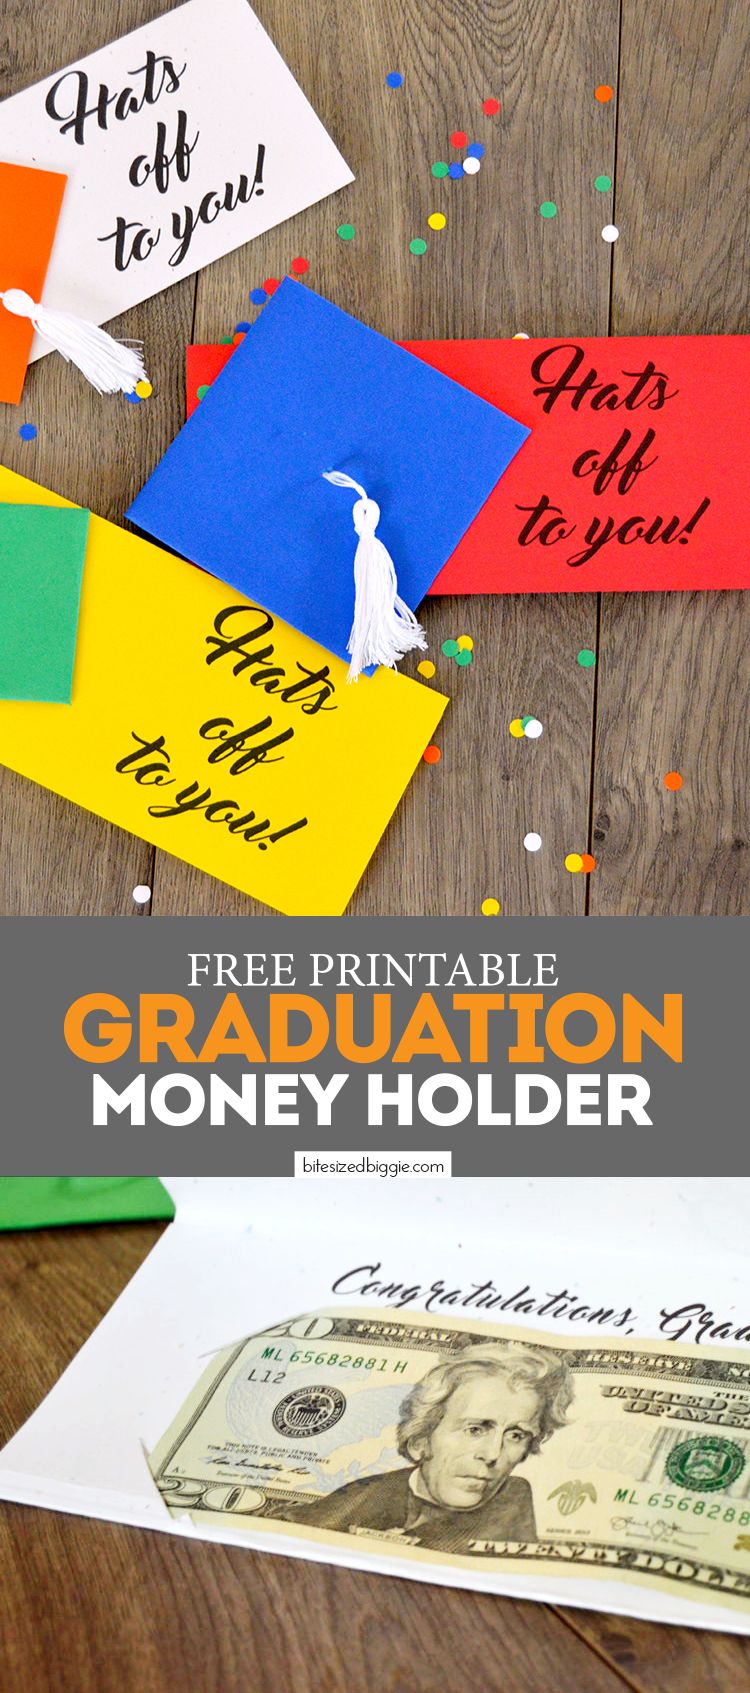 Free Printable Money Holder Graduation Card - holds cash or a check! So cute with the little tassel! FREE DOWNLOAD!